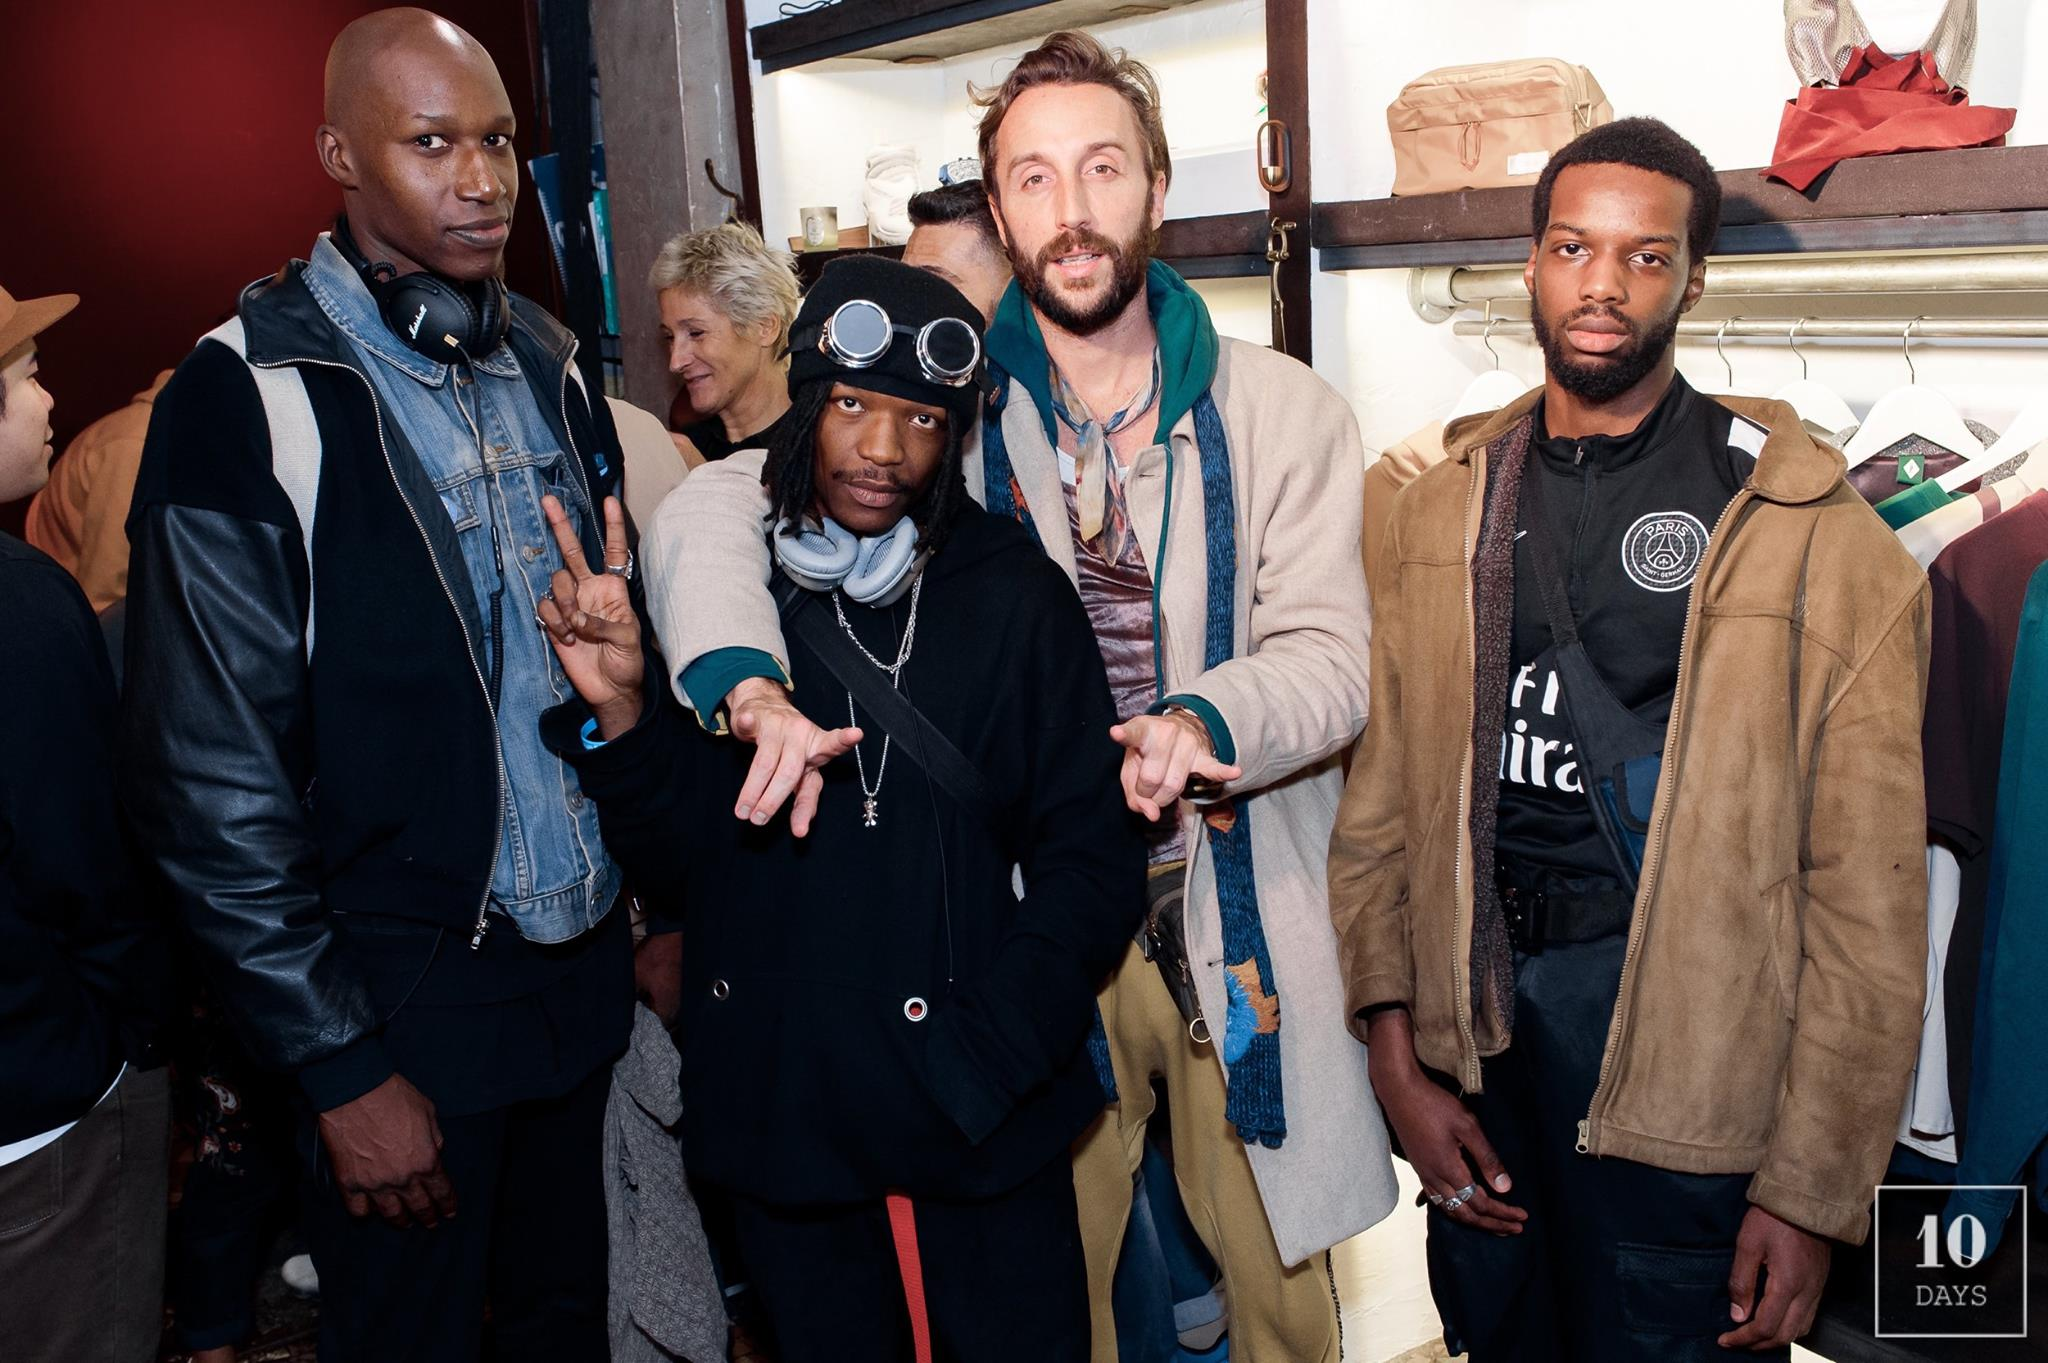 [ARCHIVES OCT. 17] G-SHOCK x PIGALLE Collaboration Launching Party